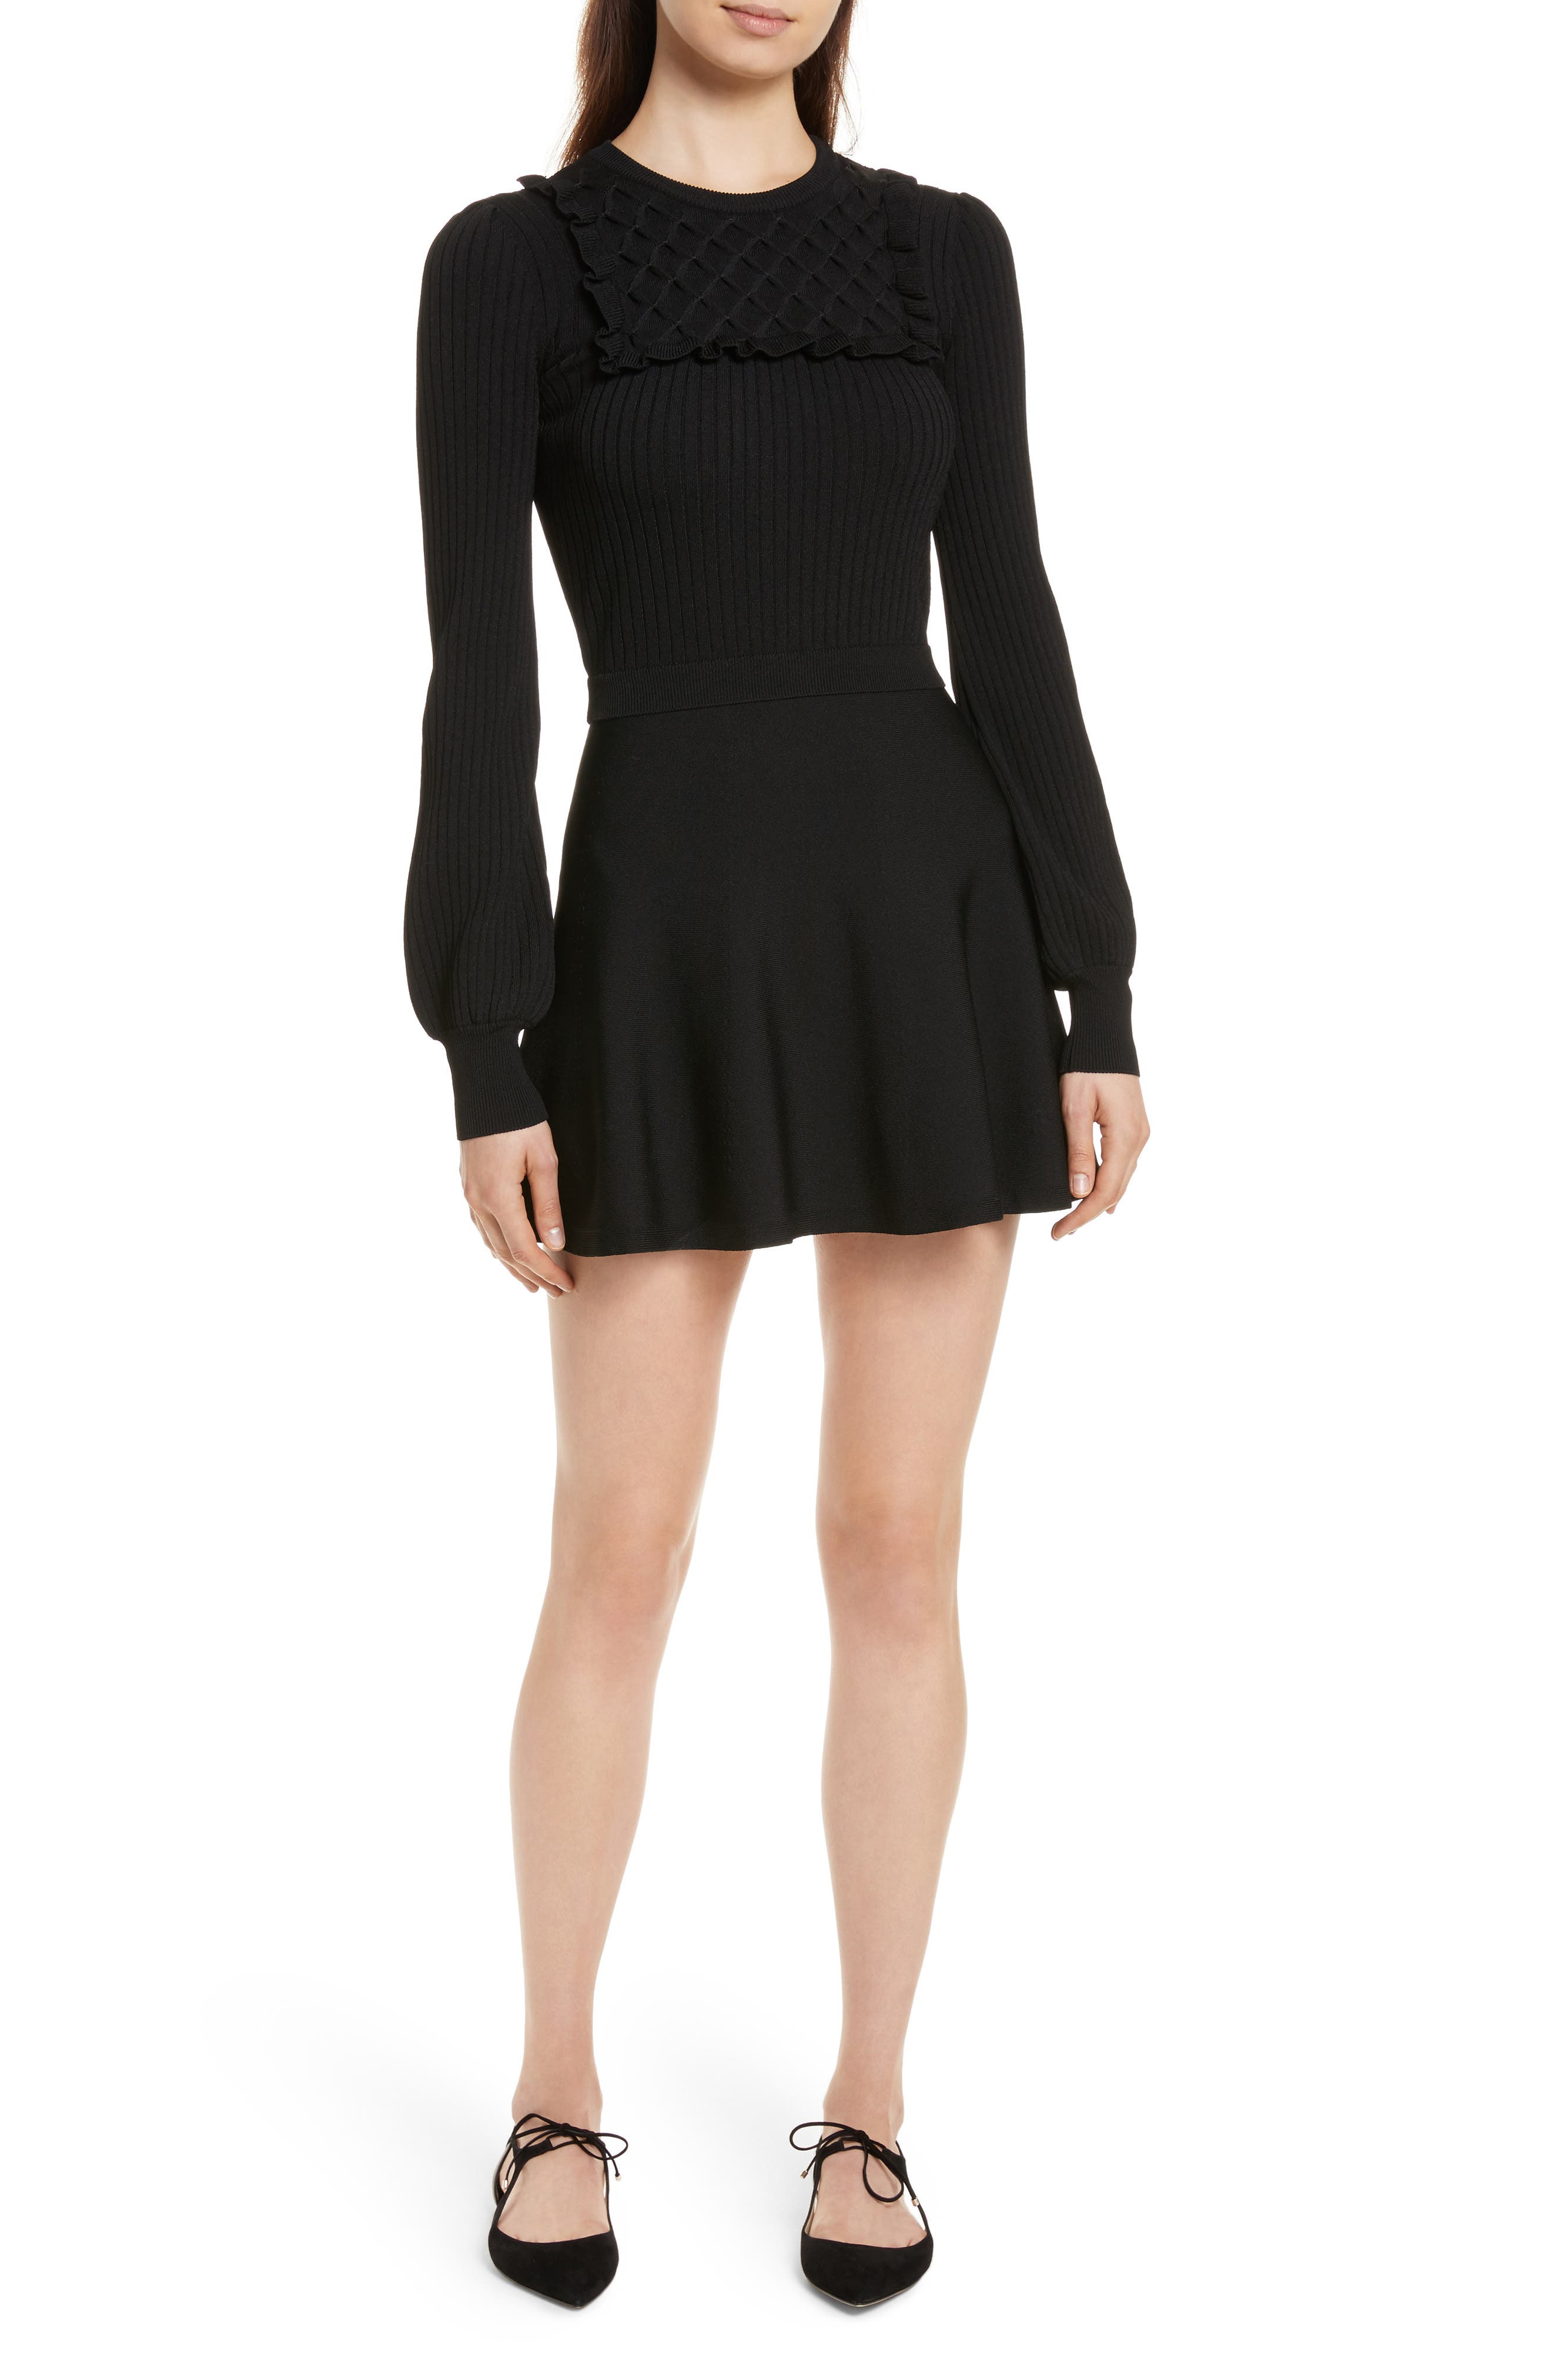 Hand Stitched Stretch Knit Dress,                             Main thumbnail 1, color,                             001